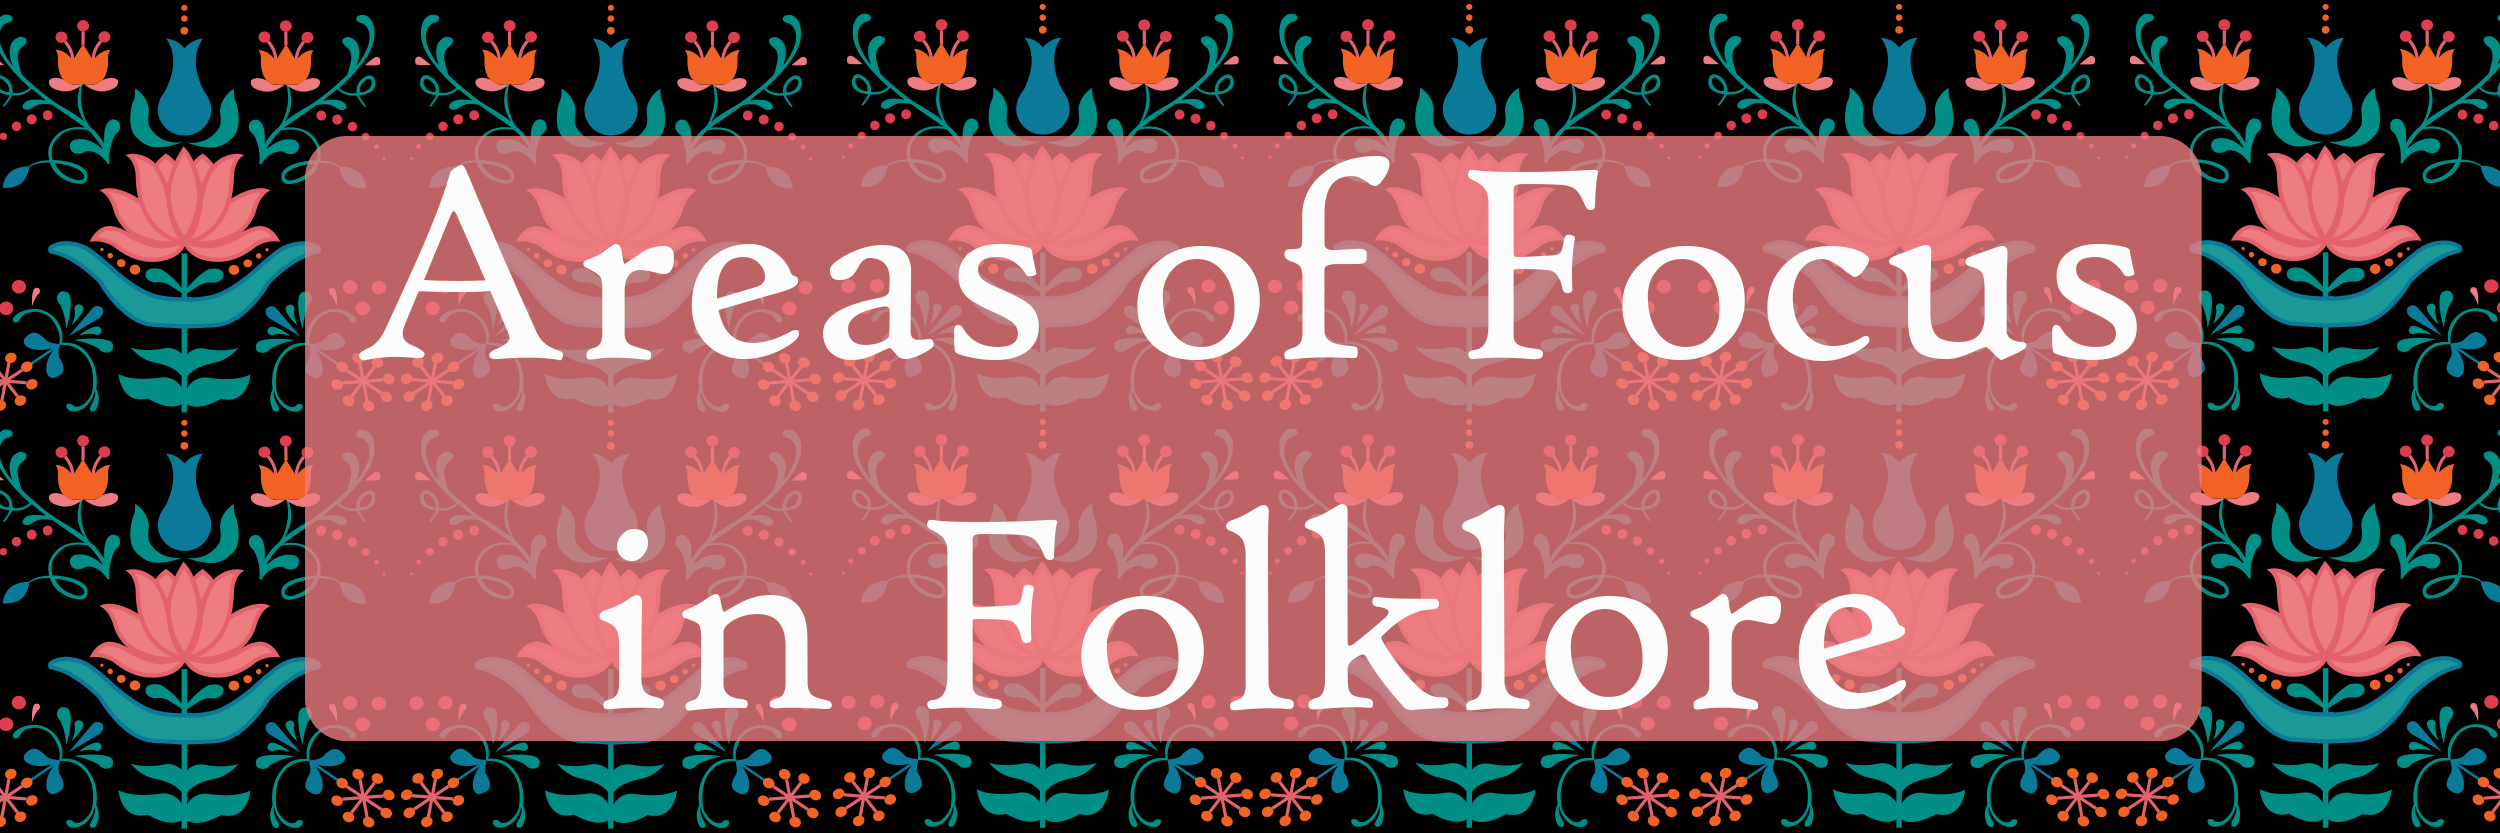 Find more folklore in the library!